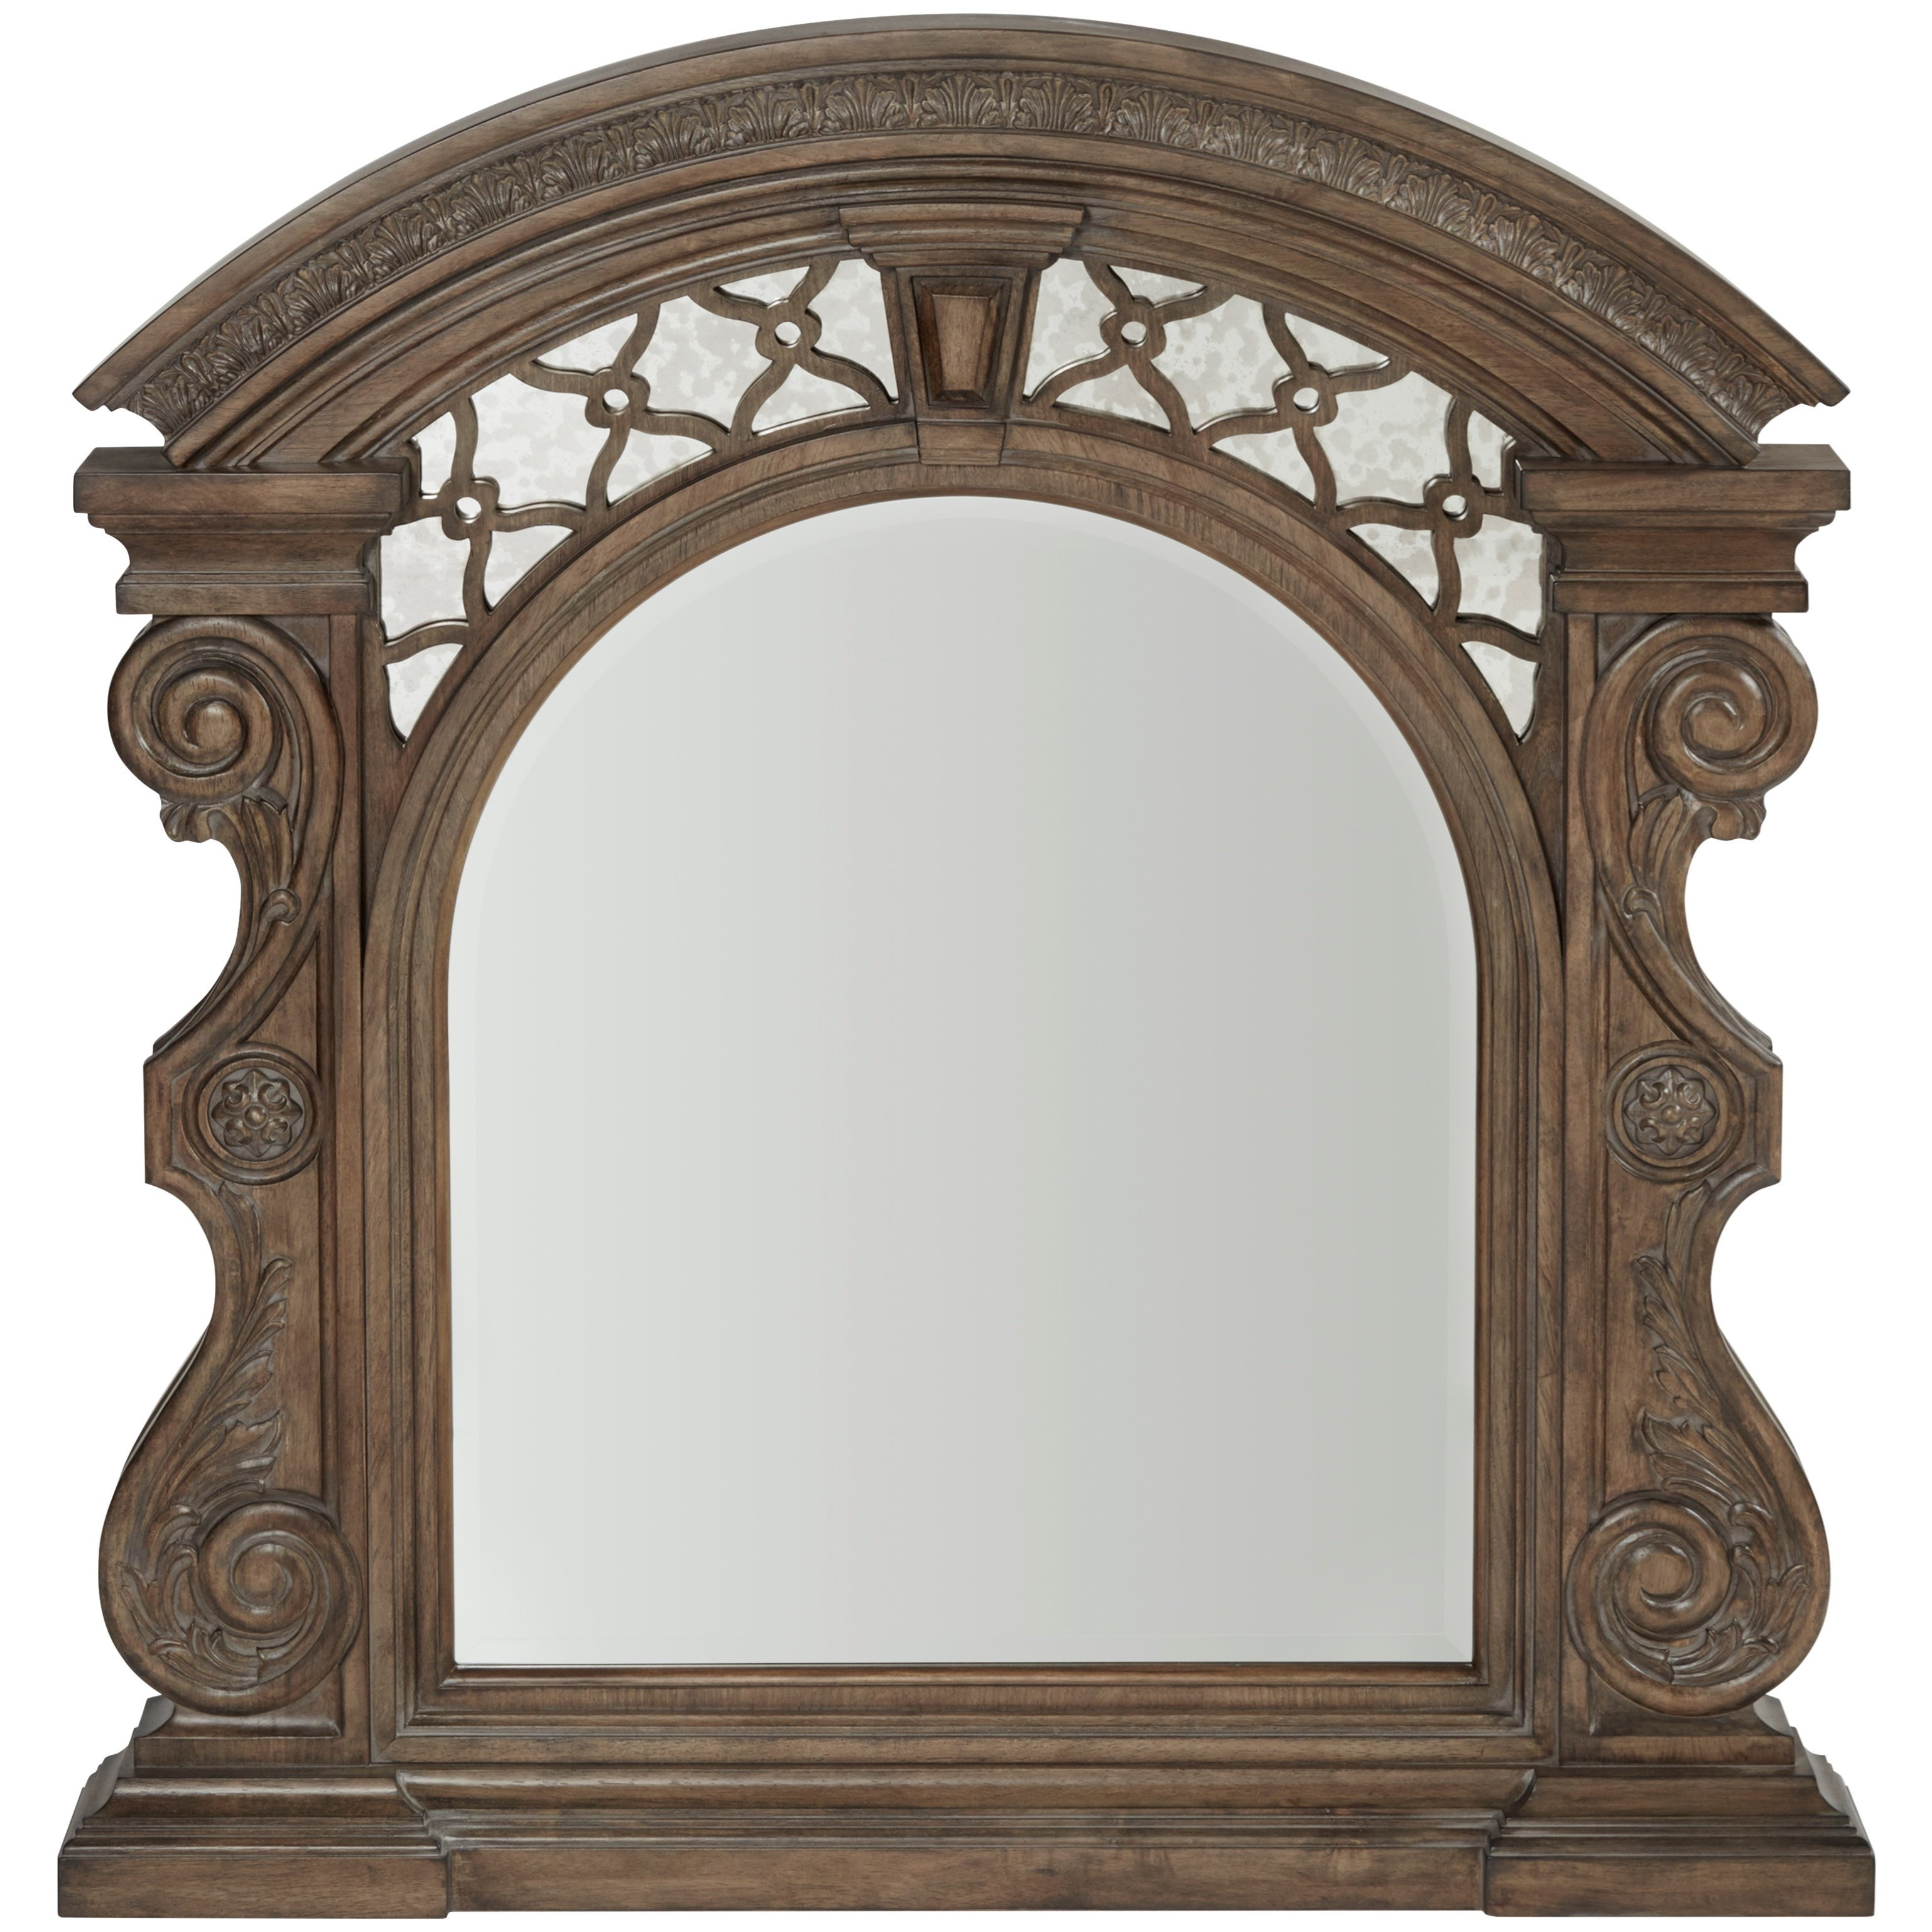 Vintage Salvage  Bentley Carved Mirror  by A.R.T. Furniture Inc at Home Collections Furniture